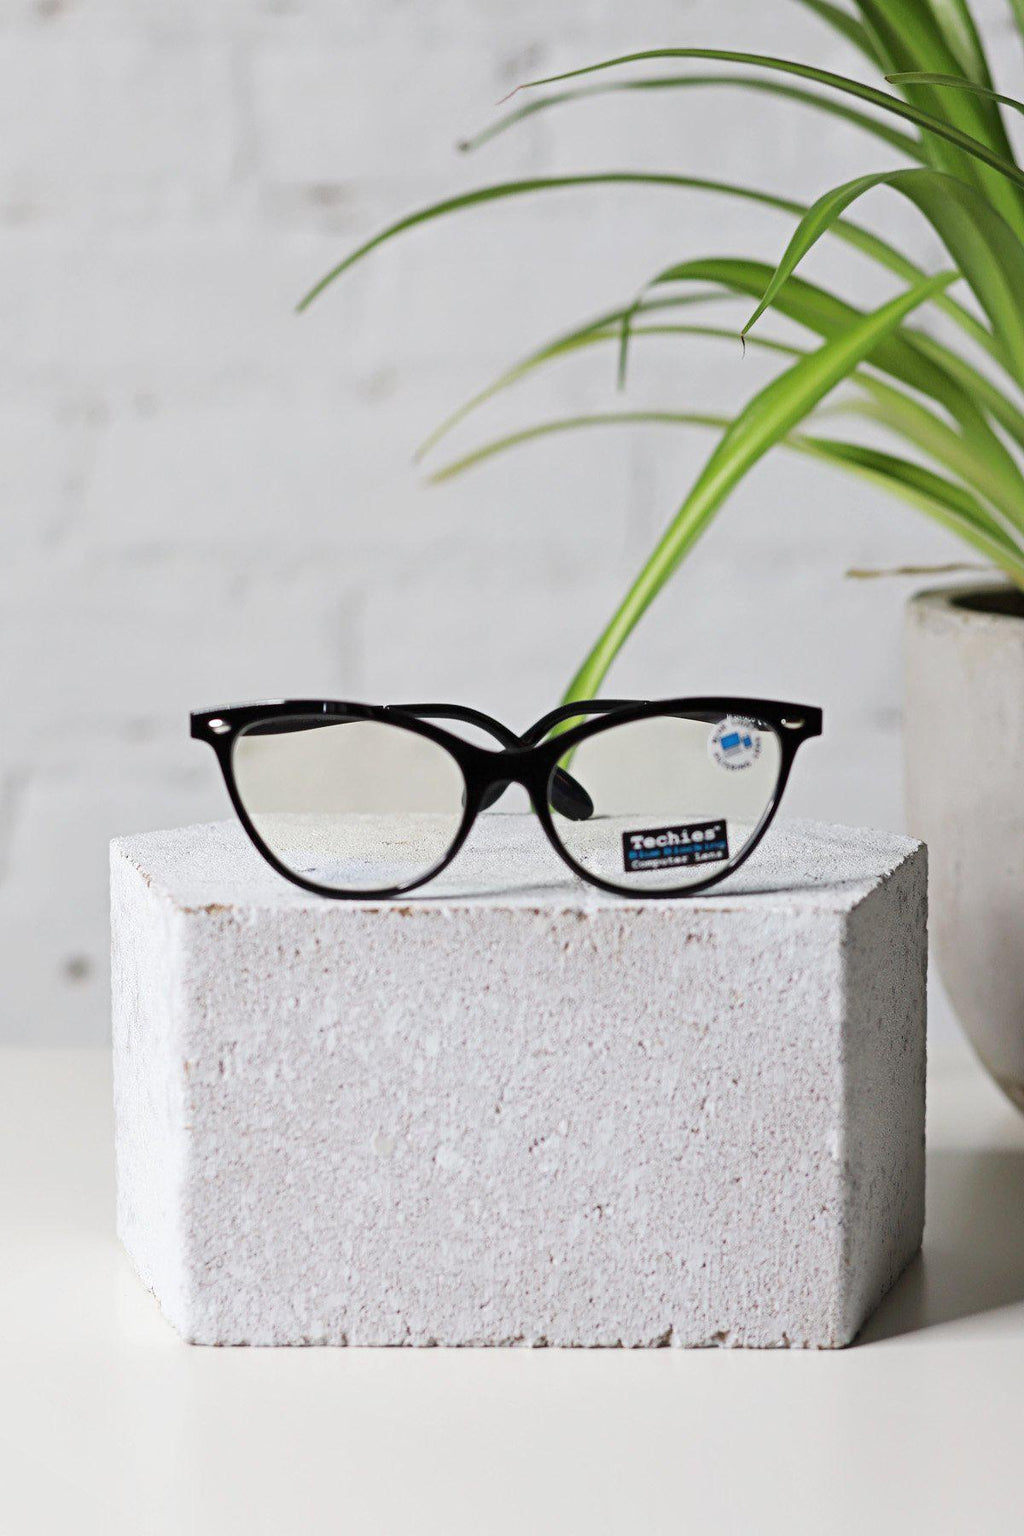 Black Cat Eye Blue Light Glasses - Gallery 512 Boutique